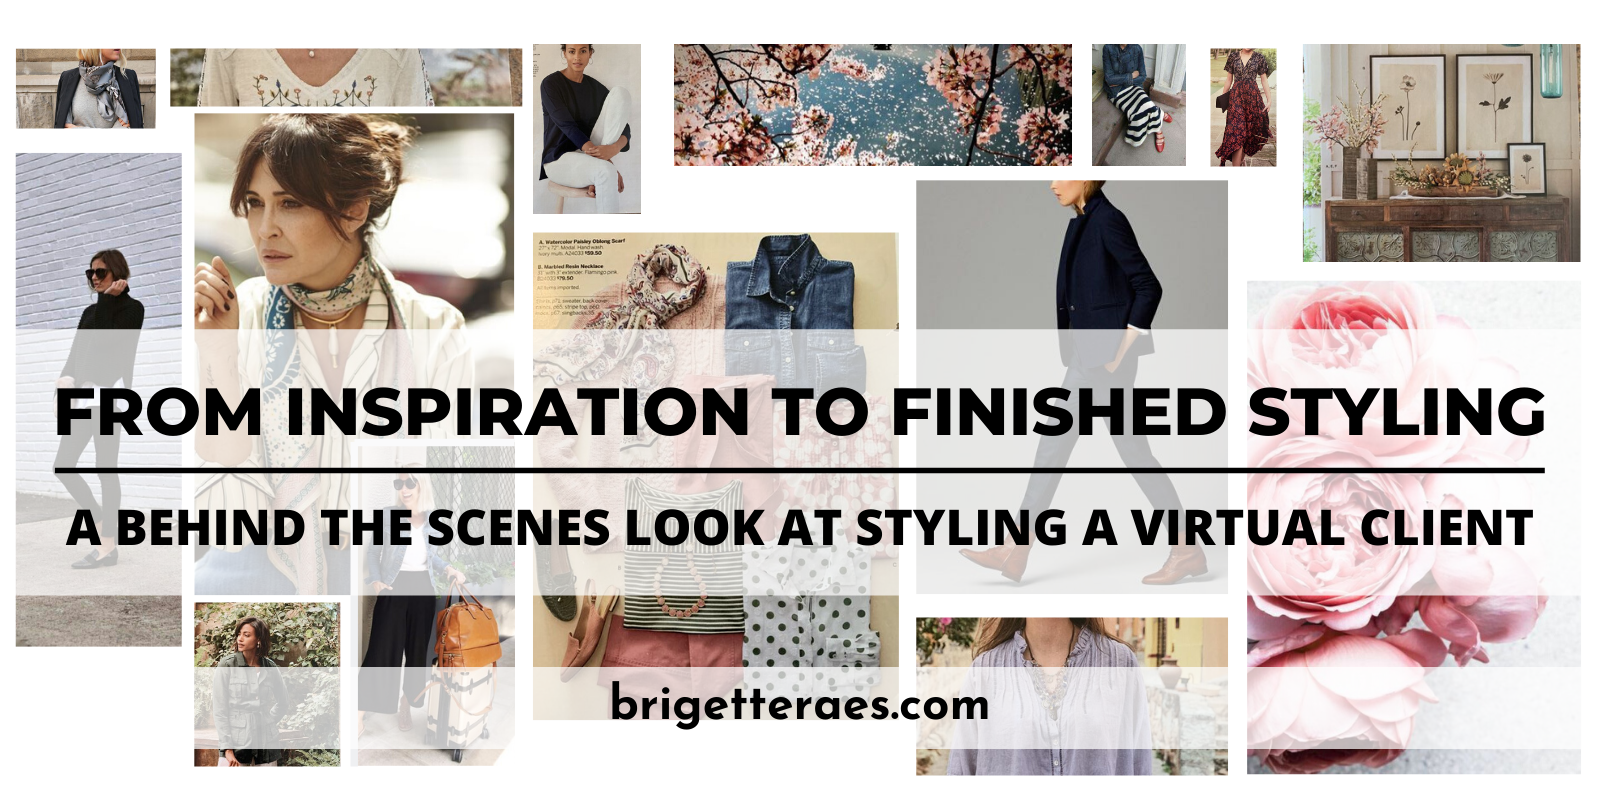 From Inspiration to Finished Styling: A Behind The Scenes Look at Styling a Virtual Client